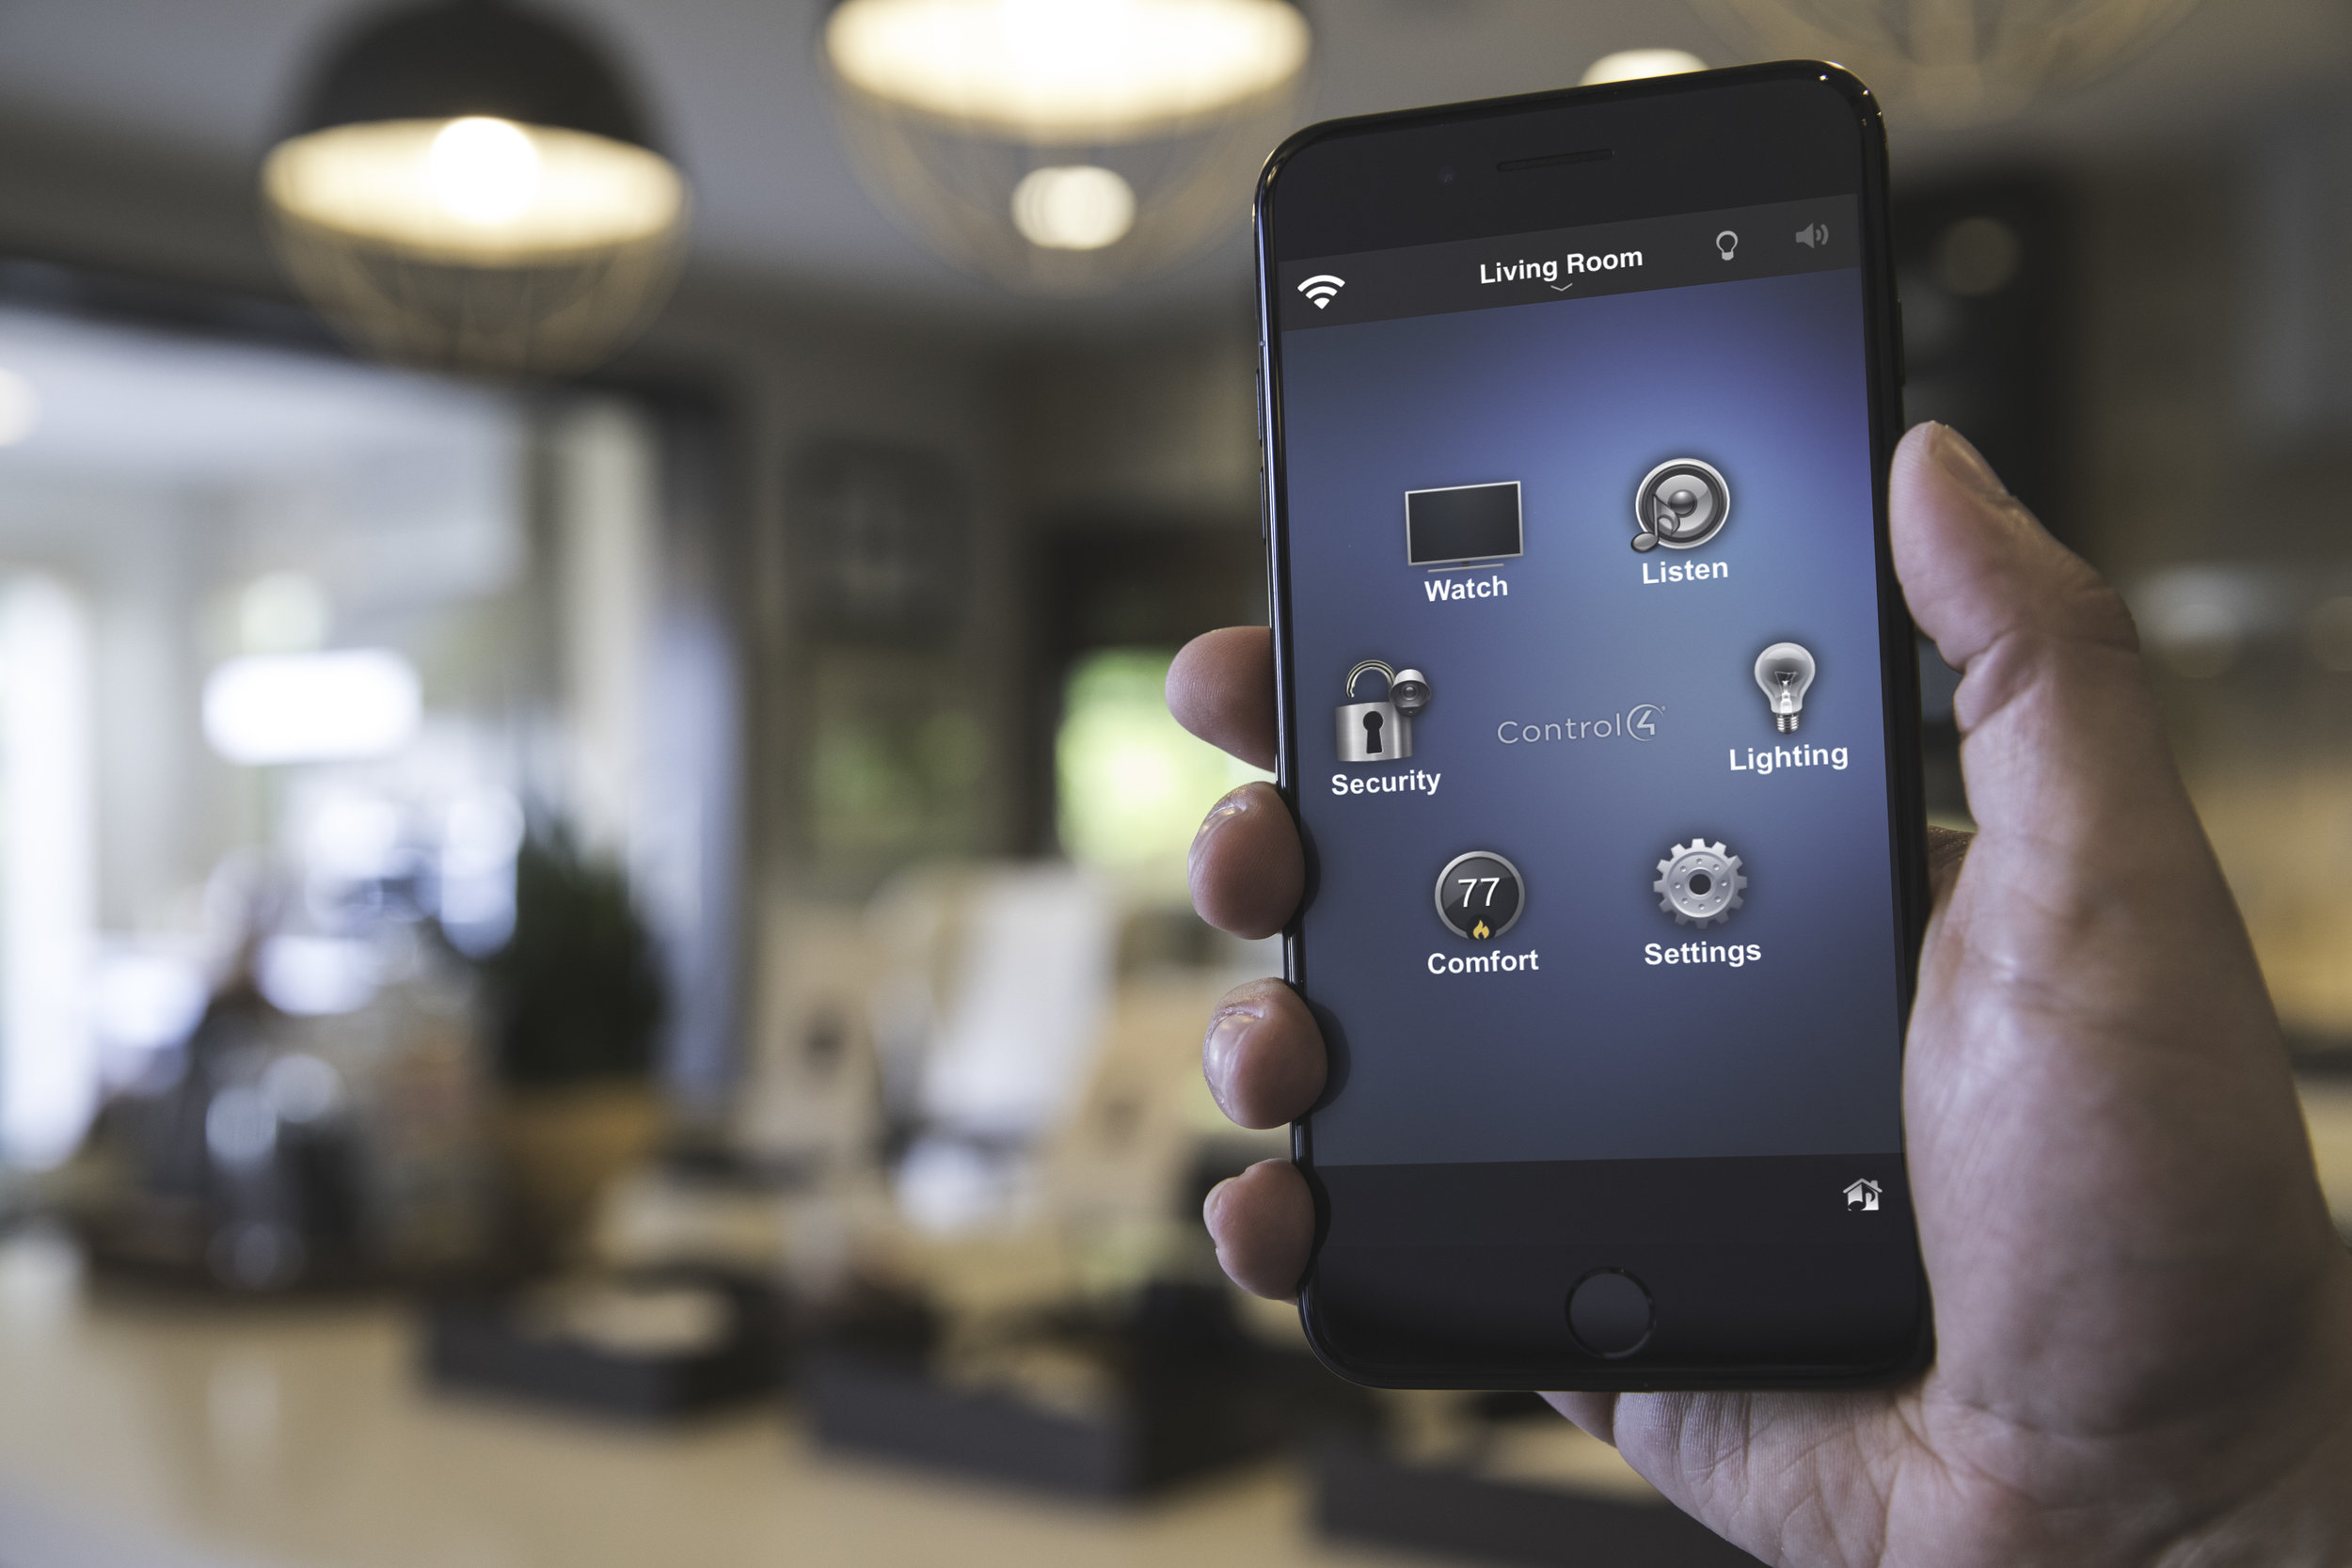 Smart_Phone_Control_Home_Automation_Systems_Remote_Access_Control4